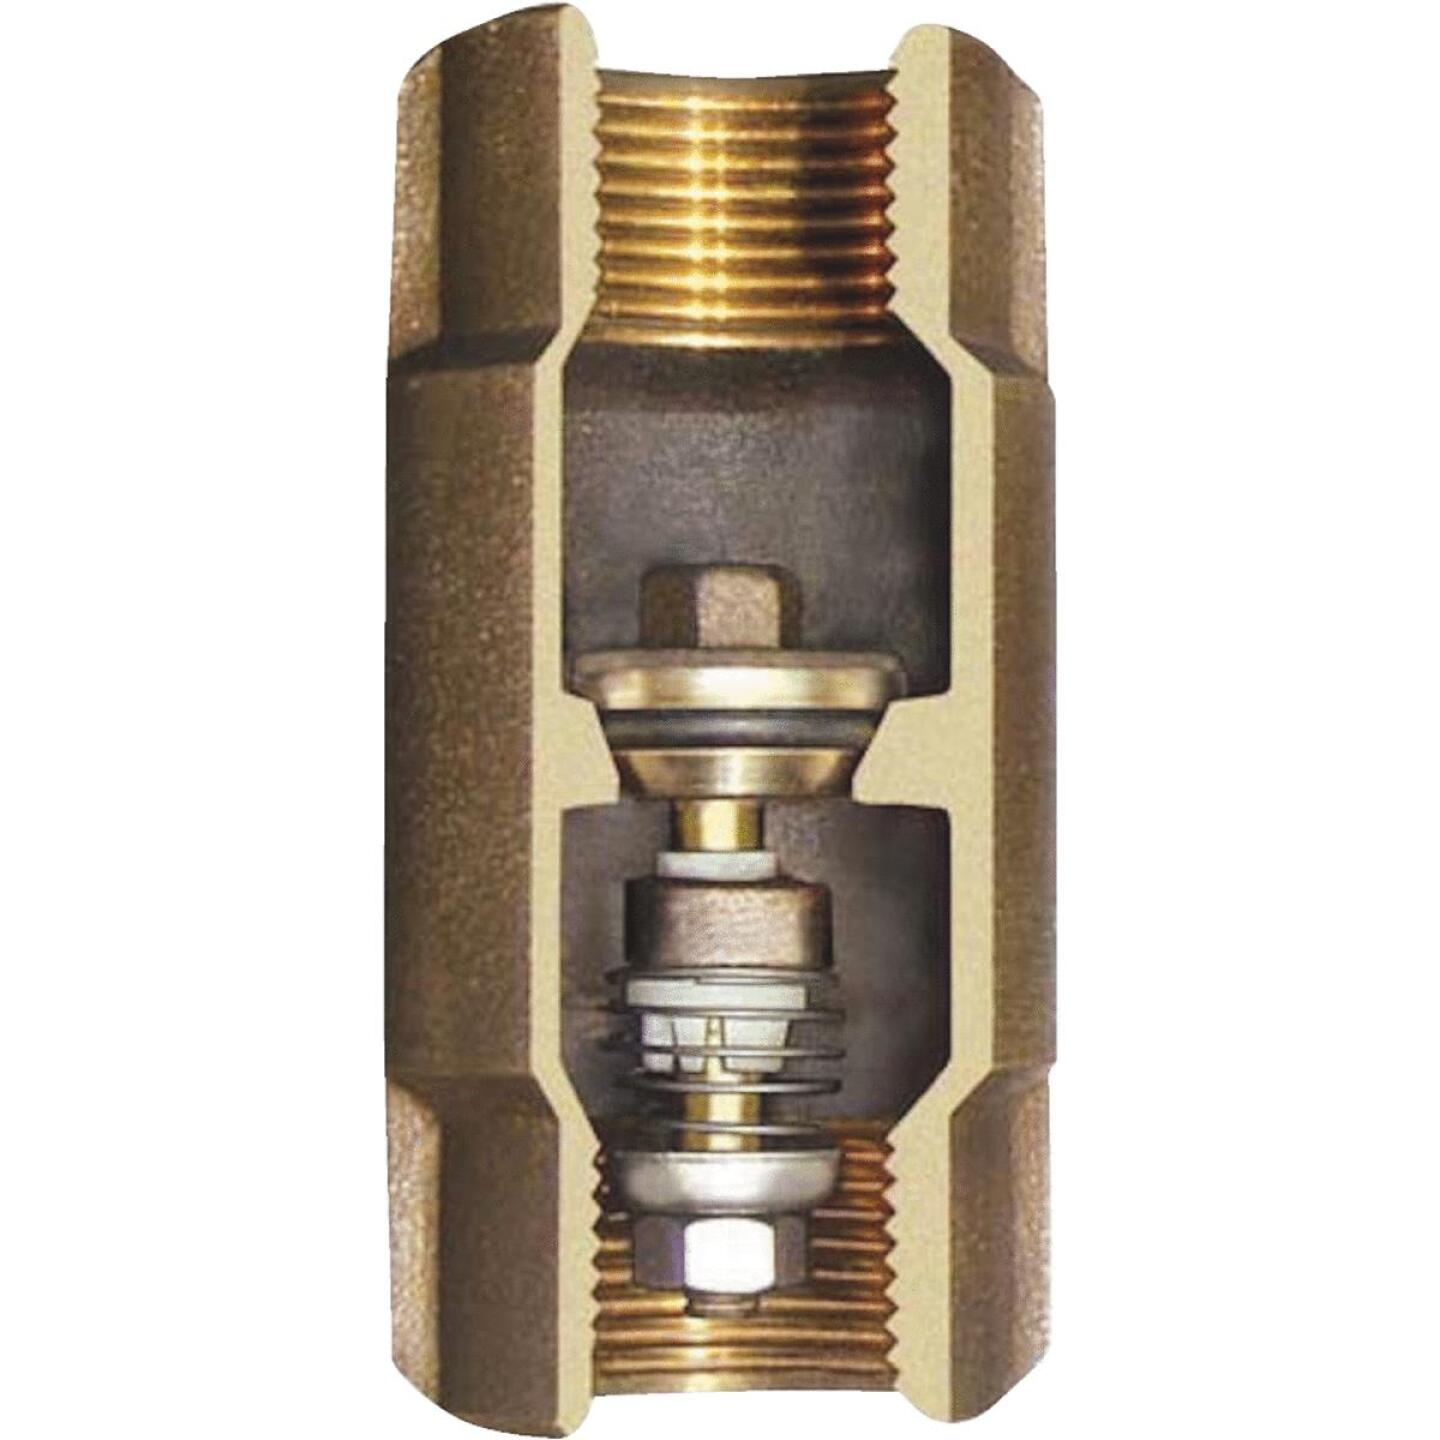 Simmons 1-1/2 In. Silicon Bronze Lead Free Check Valve Image 1